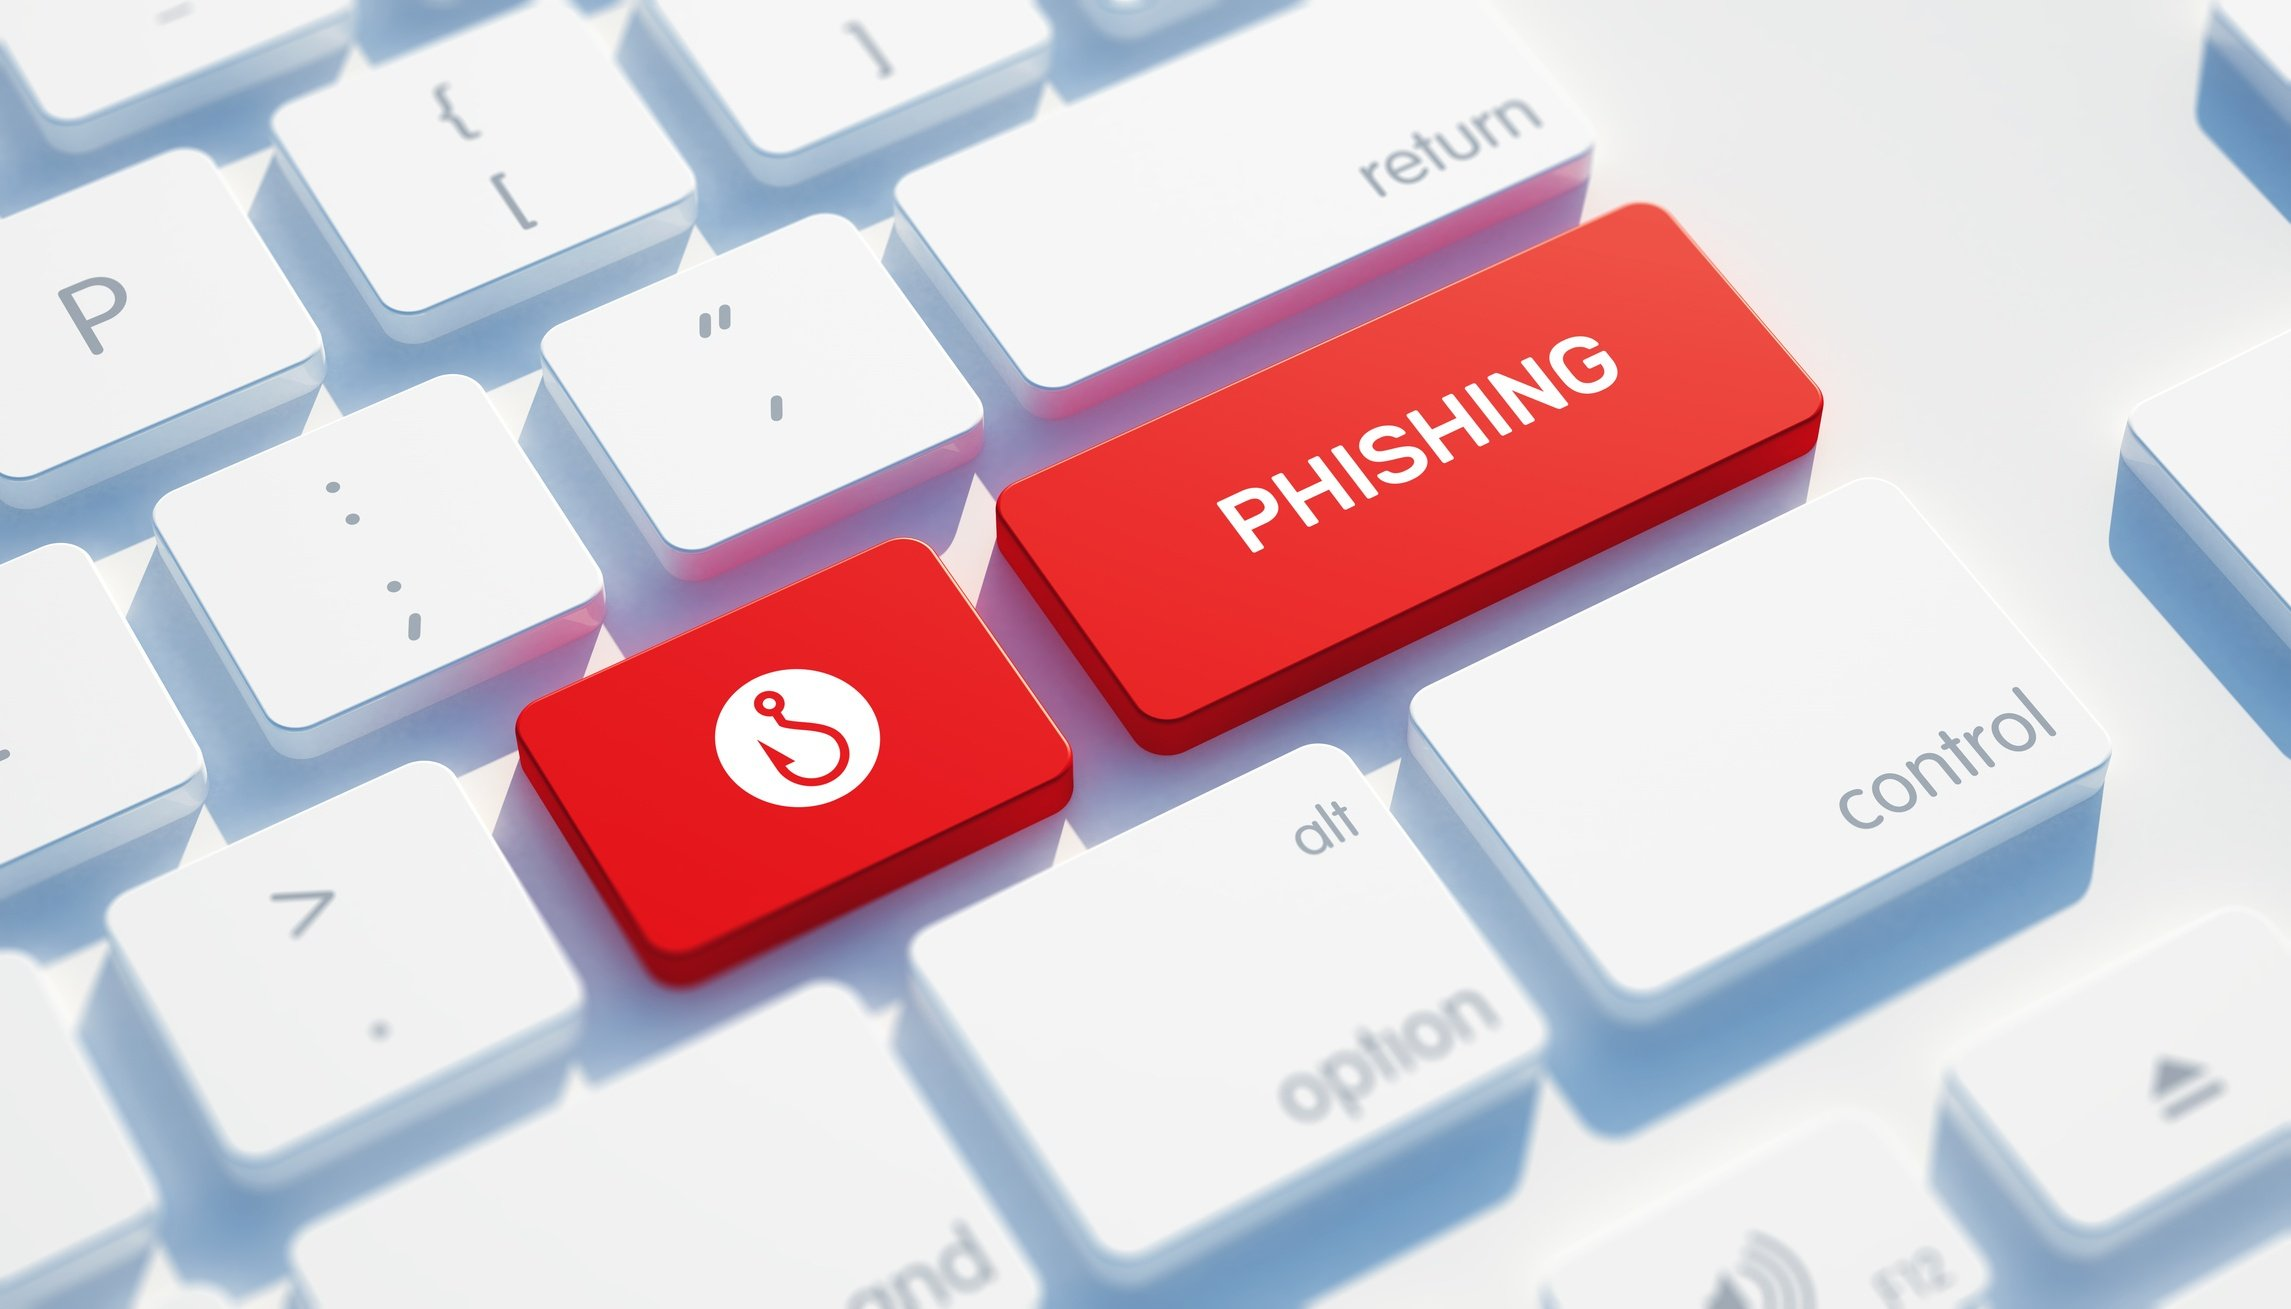 5 Ways to Prevent a Phishing Attack